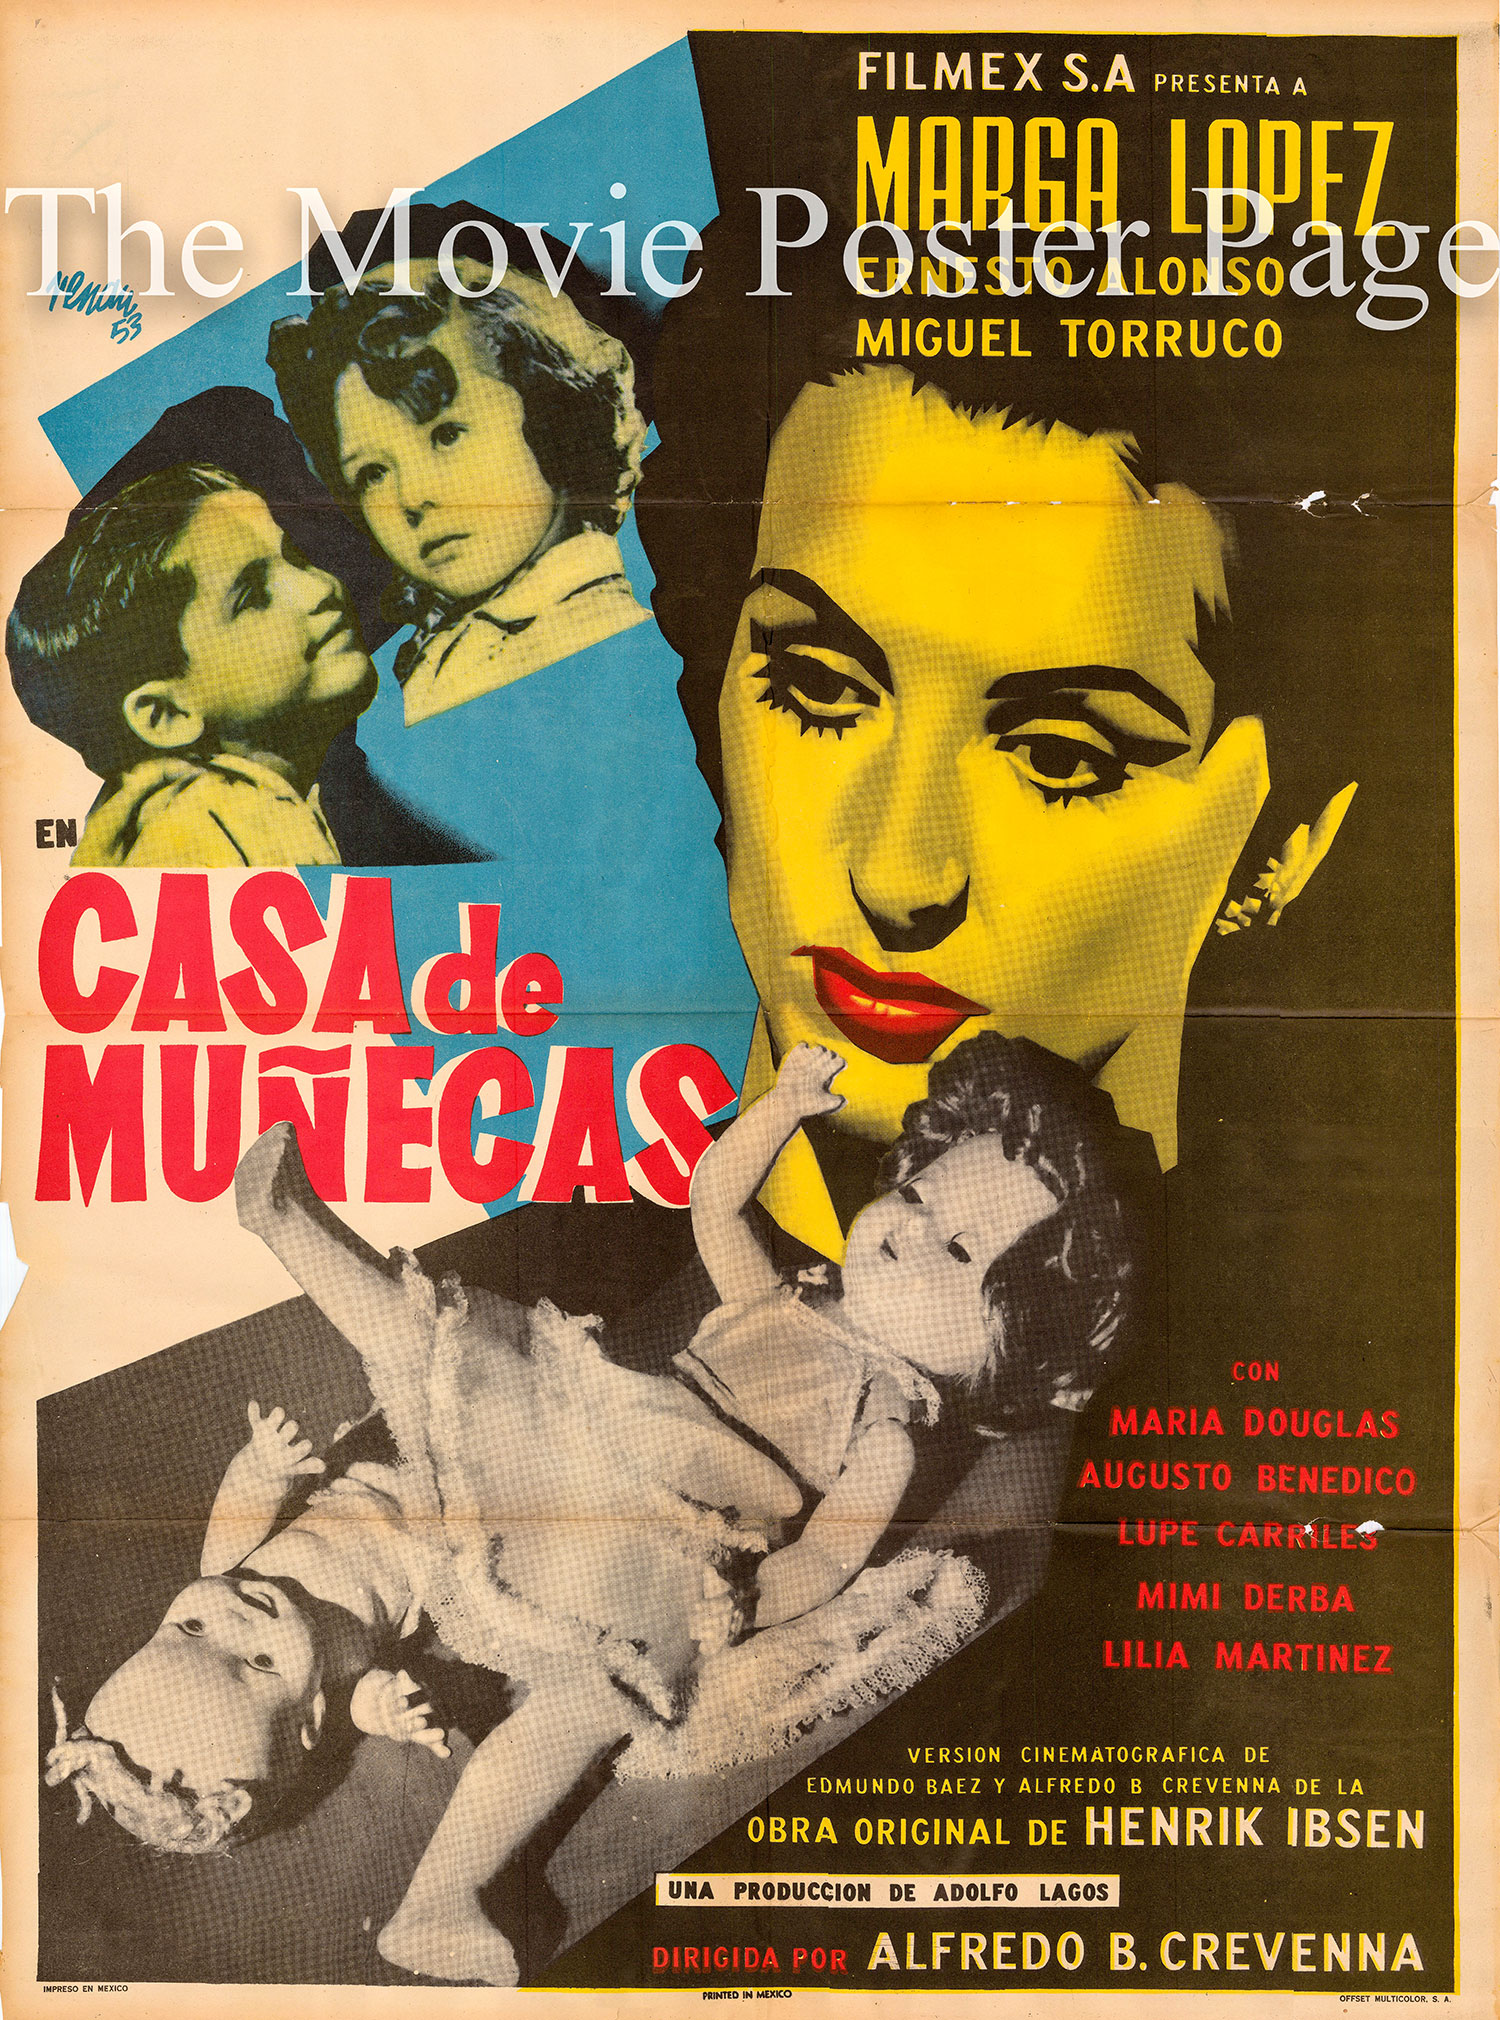 Pictured is a Mexican promotional poster for the 1953 Alfredo B. Crevenna film Casa de Munecas starring Marga Lopez as Nora.